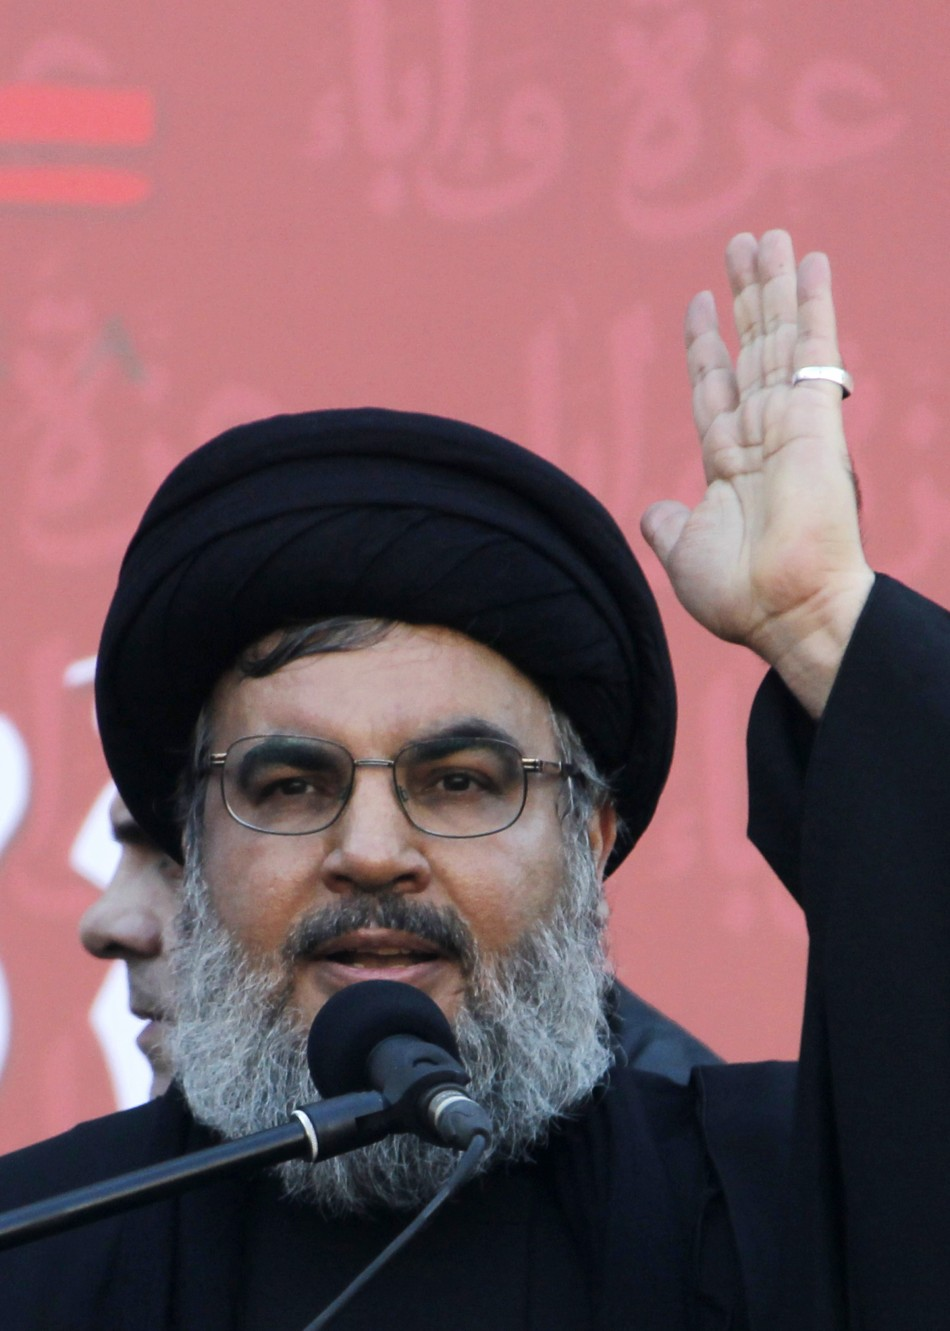 Hezbollah's Nasrallah Calls for Calm after Shia Pilgrims Abducted in Syria